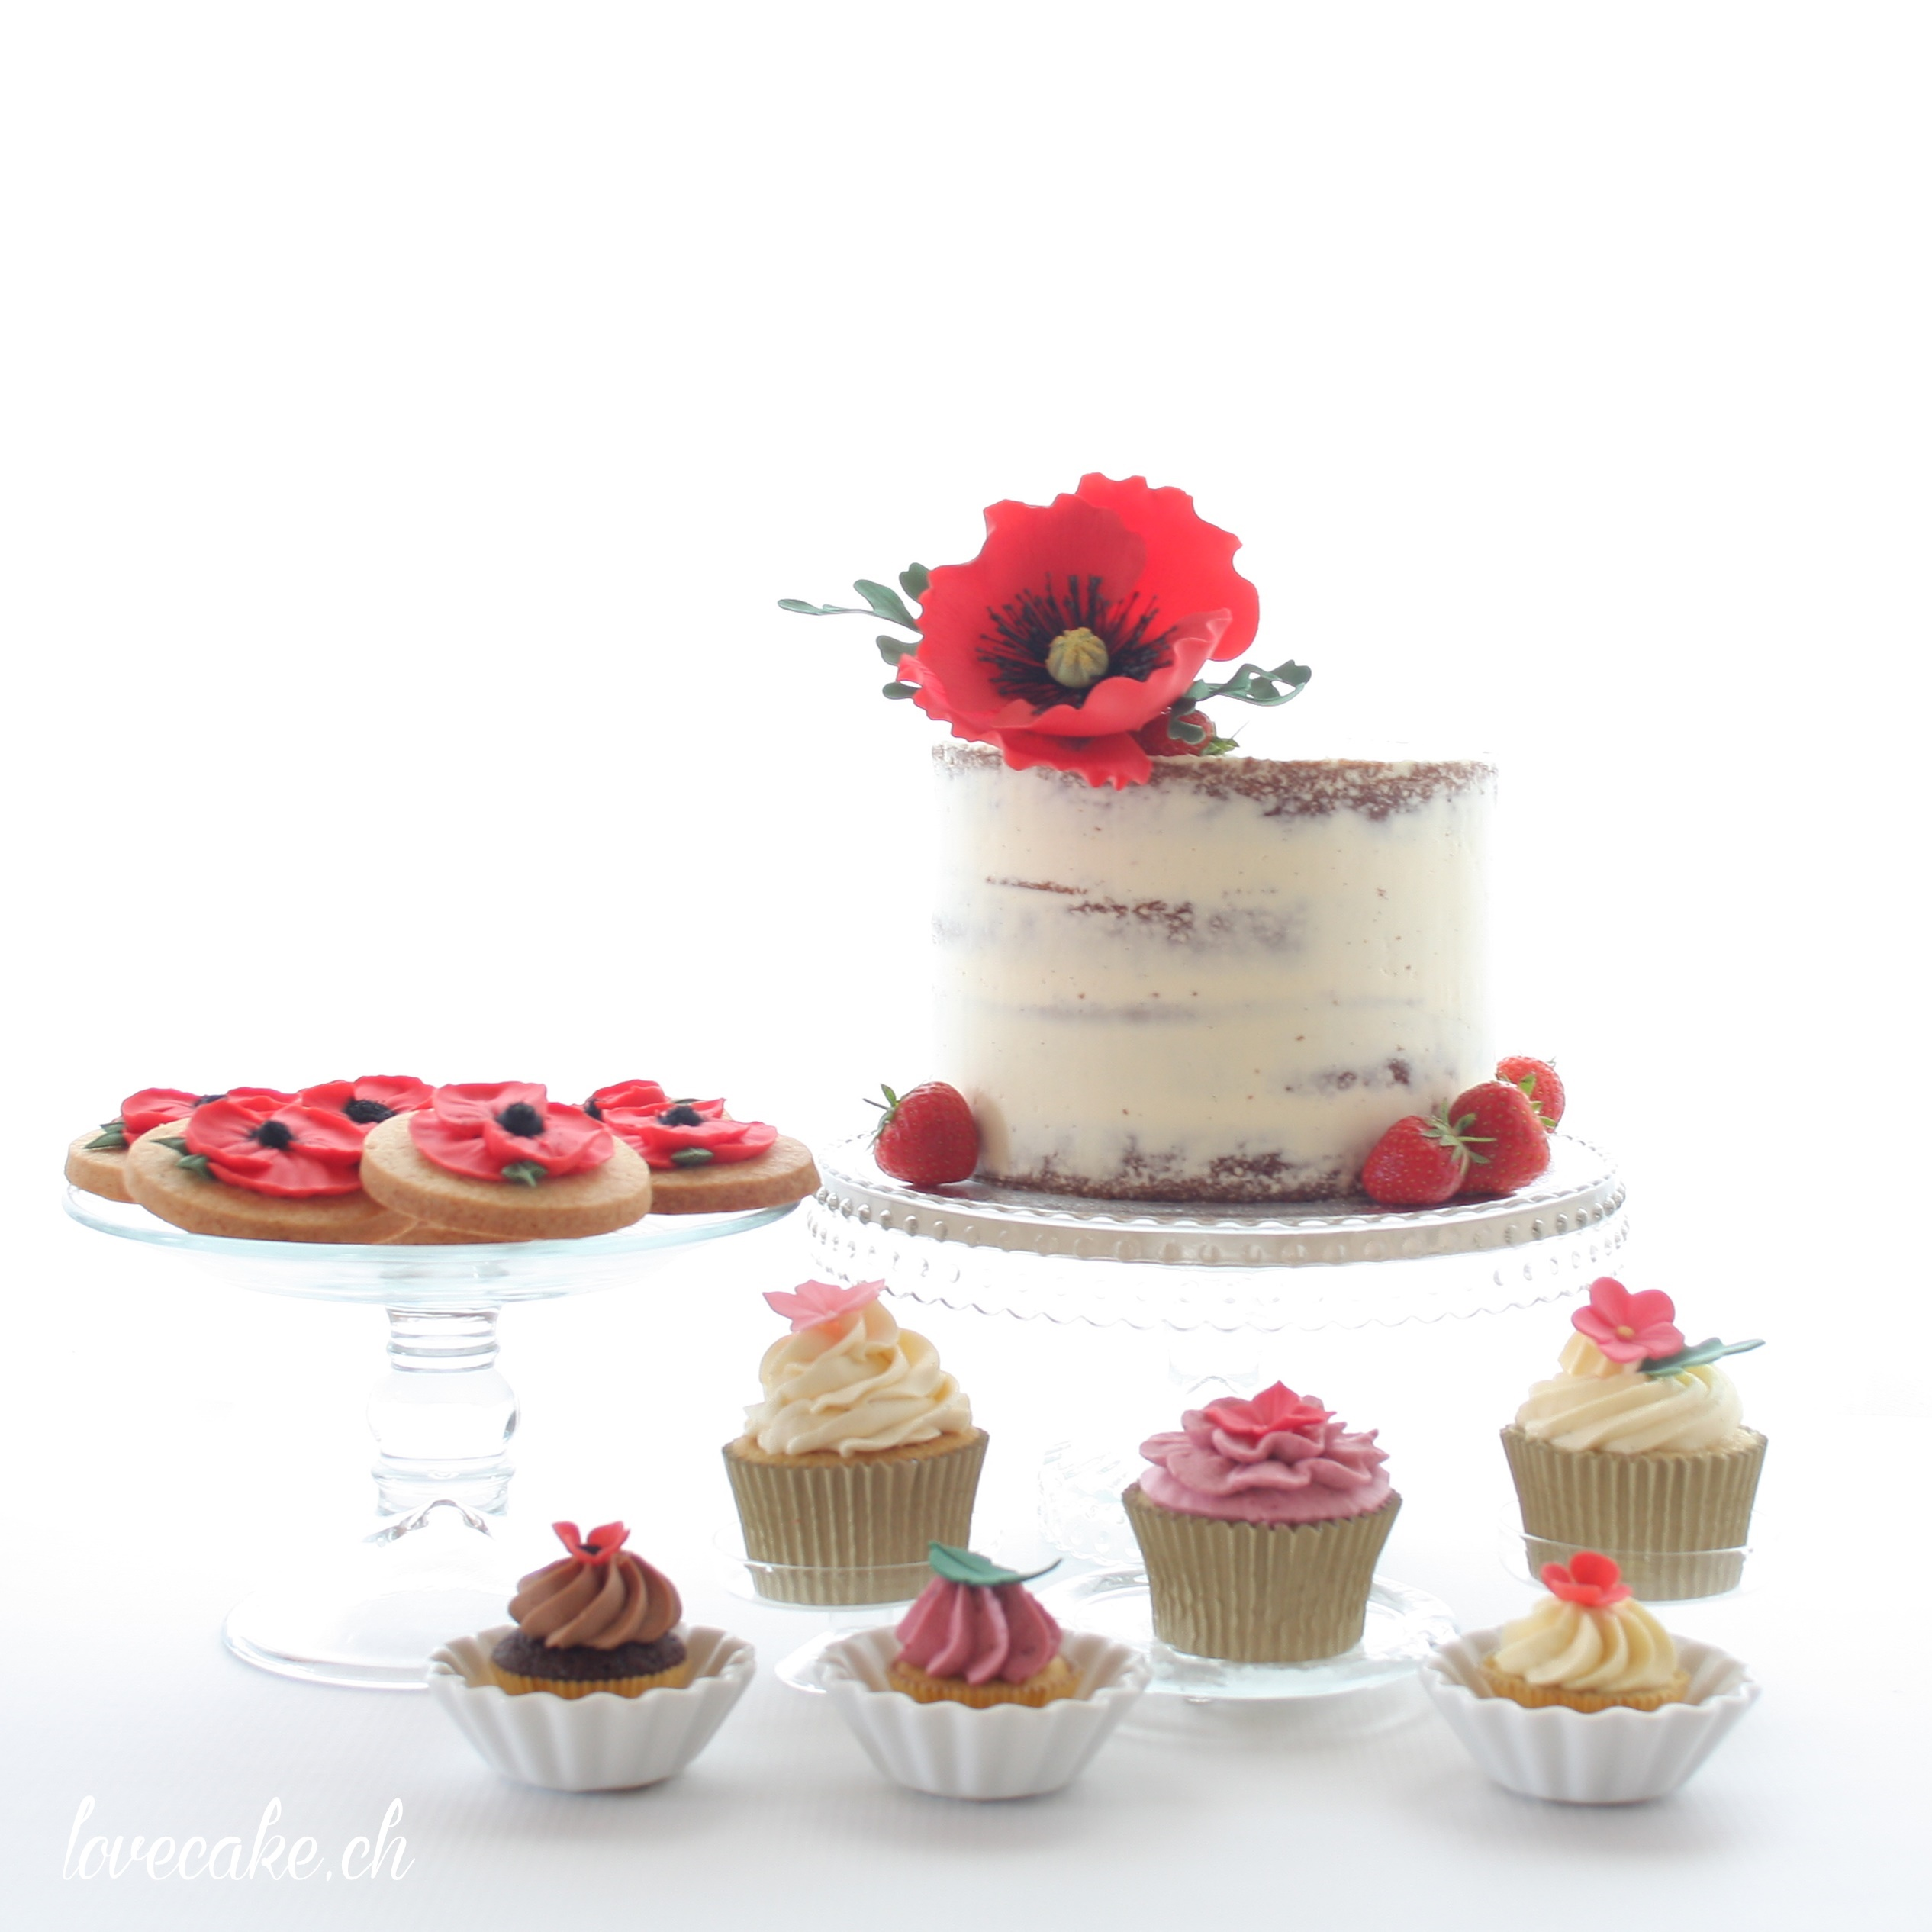 Naked cake and cupcakes with gum paste flowers